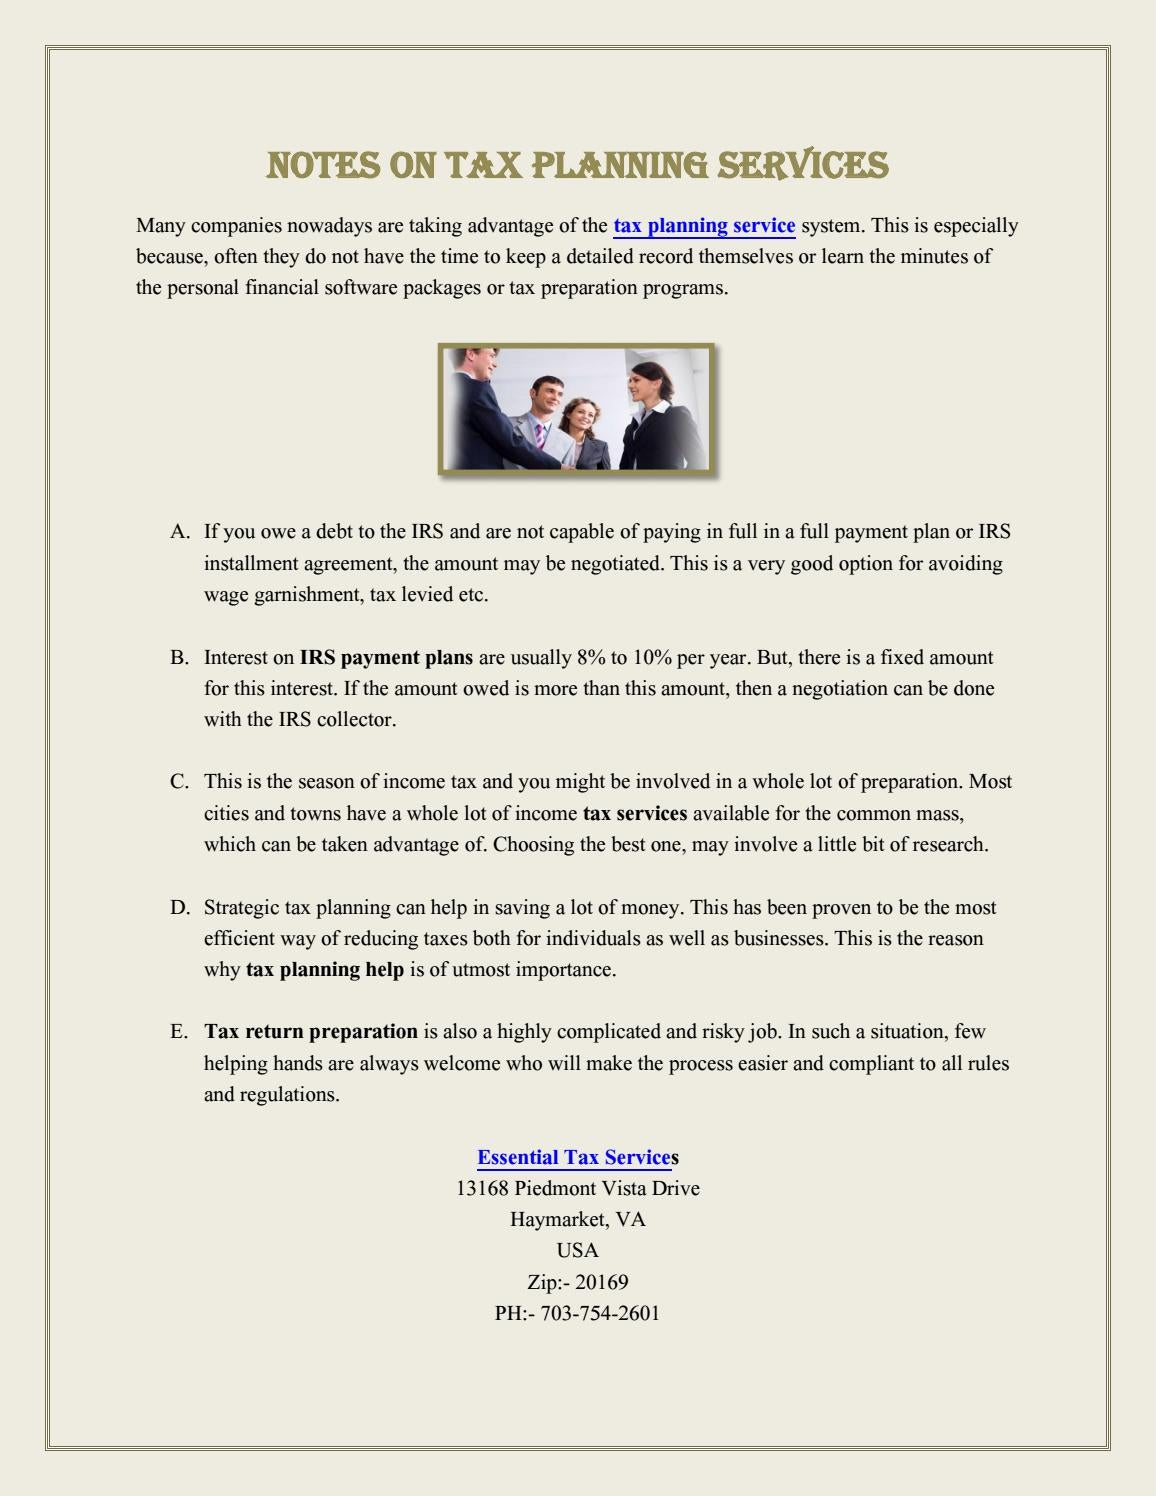 Notes on Tax Planning Services by AlexaGabriel - issuu